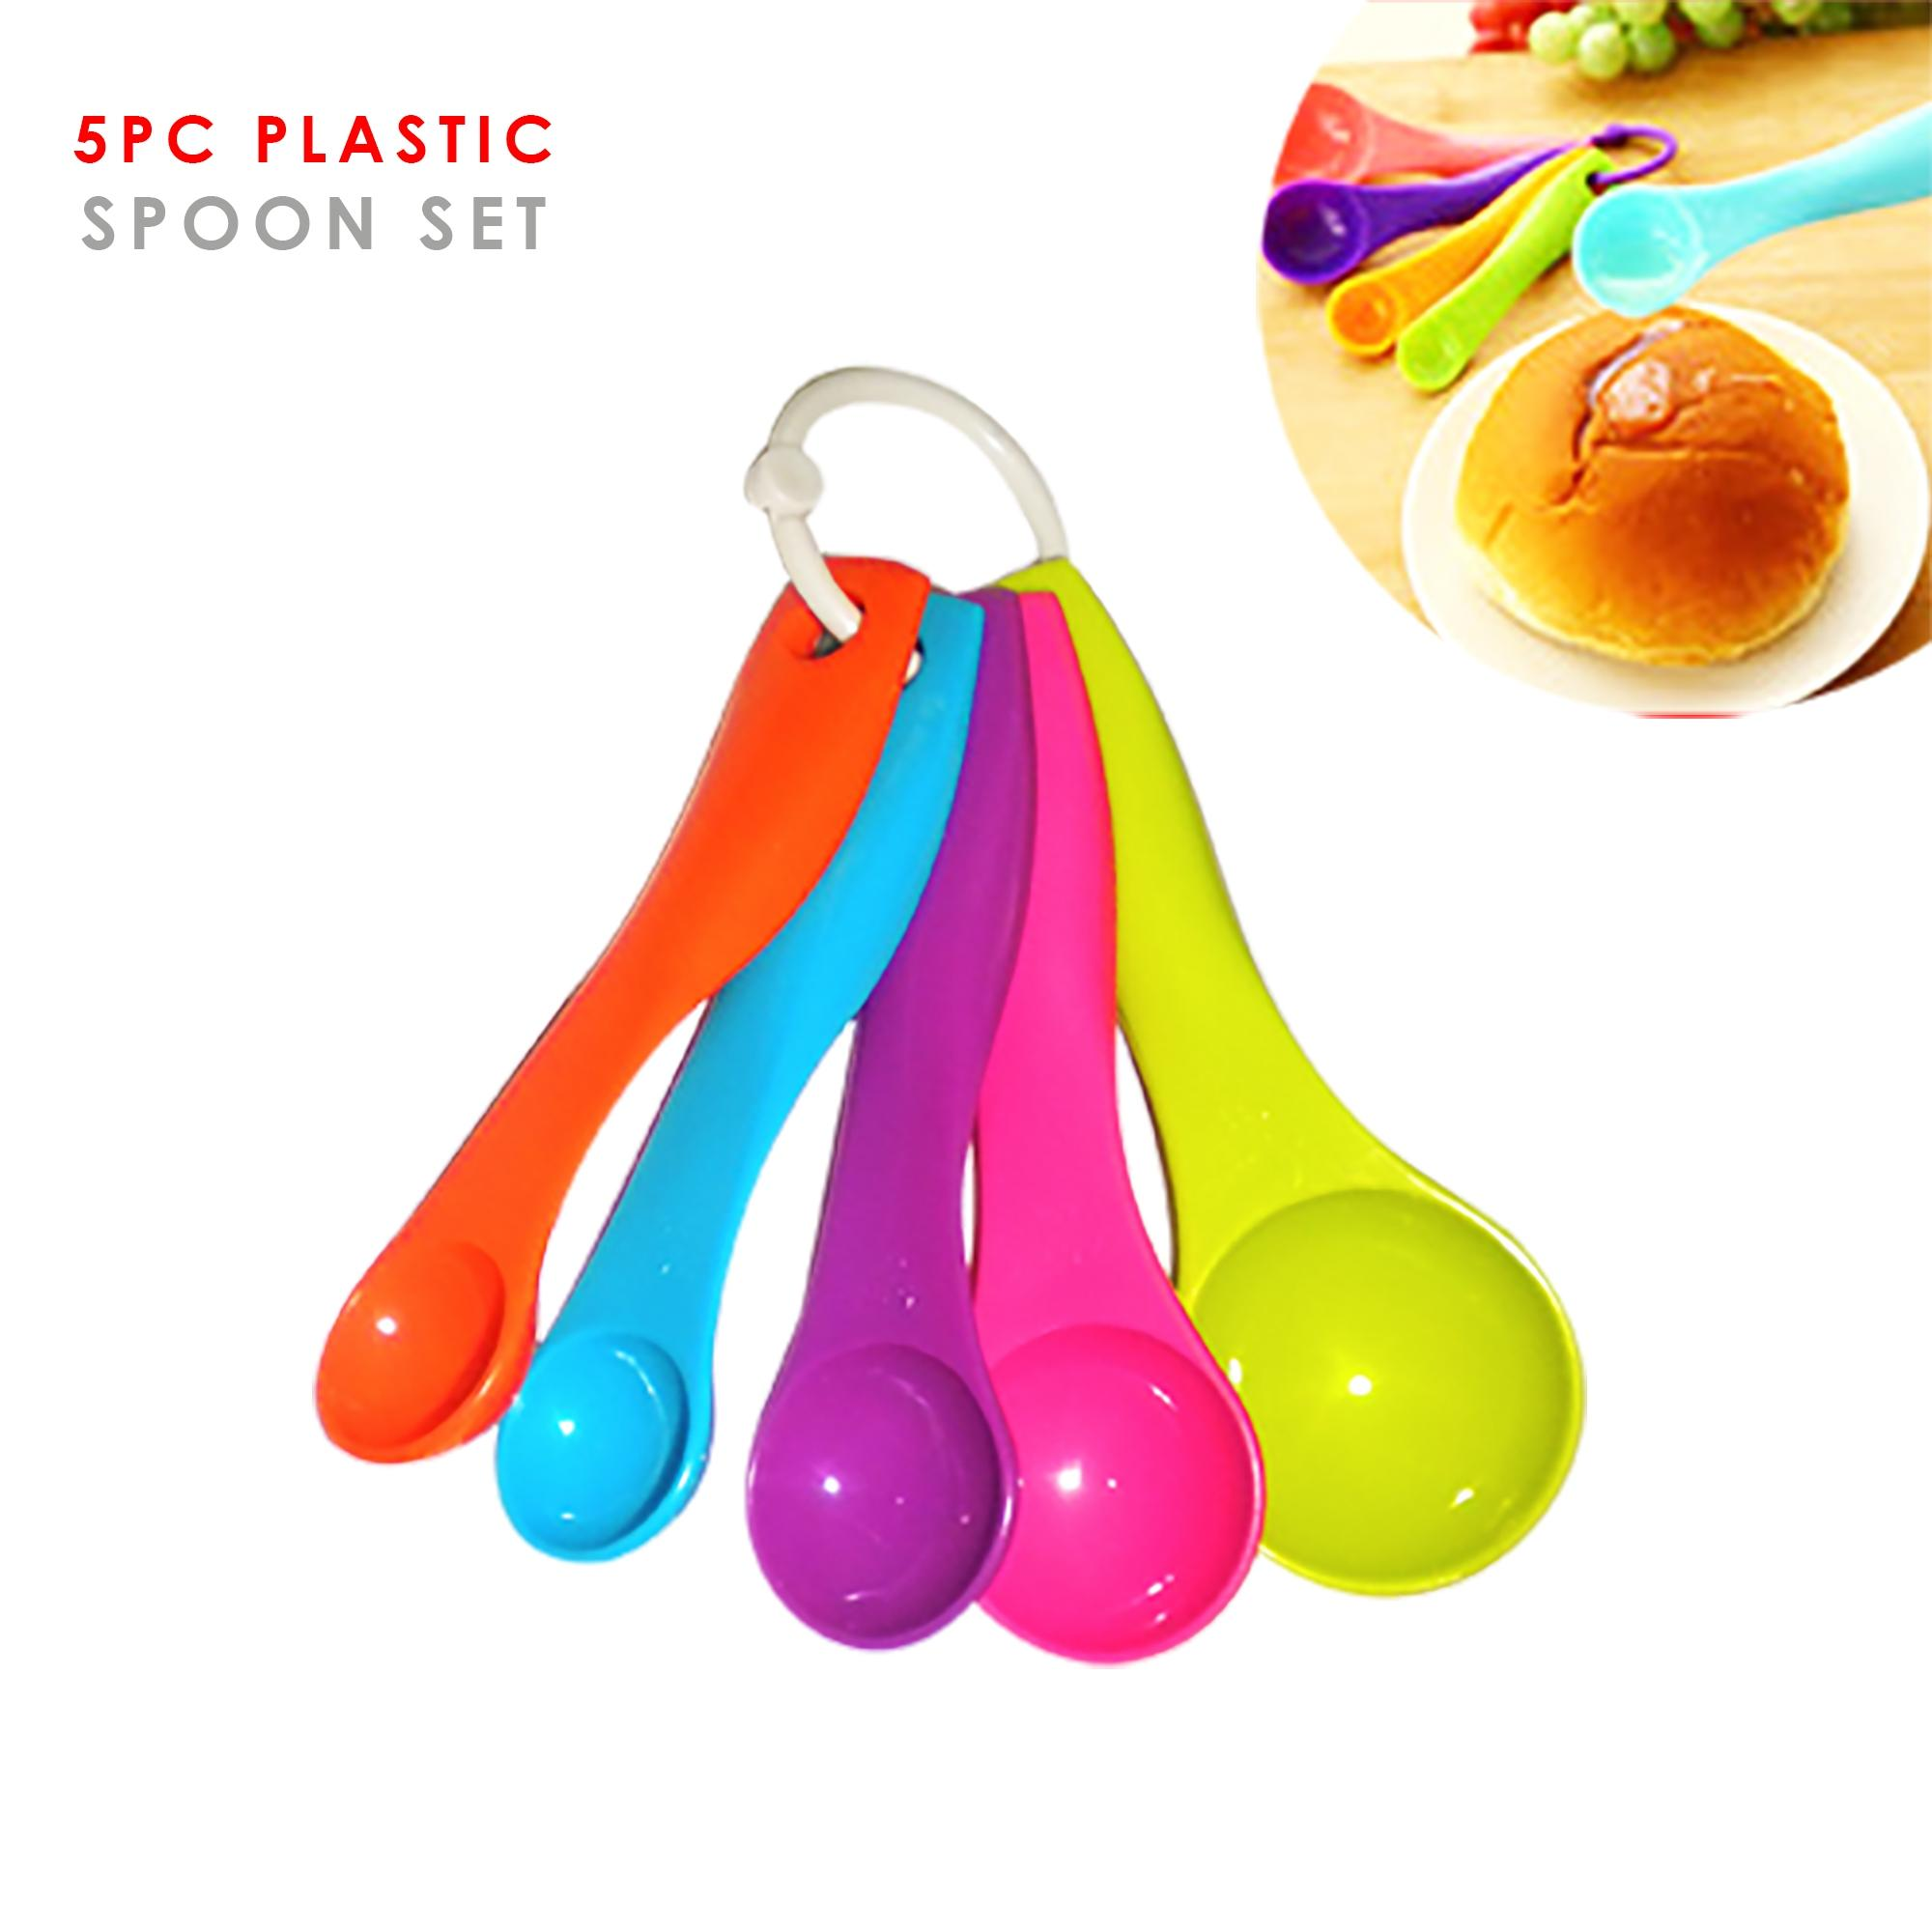 Plastic Spoon Set